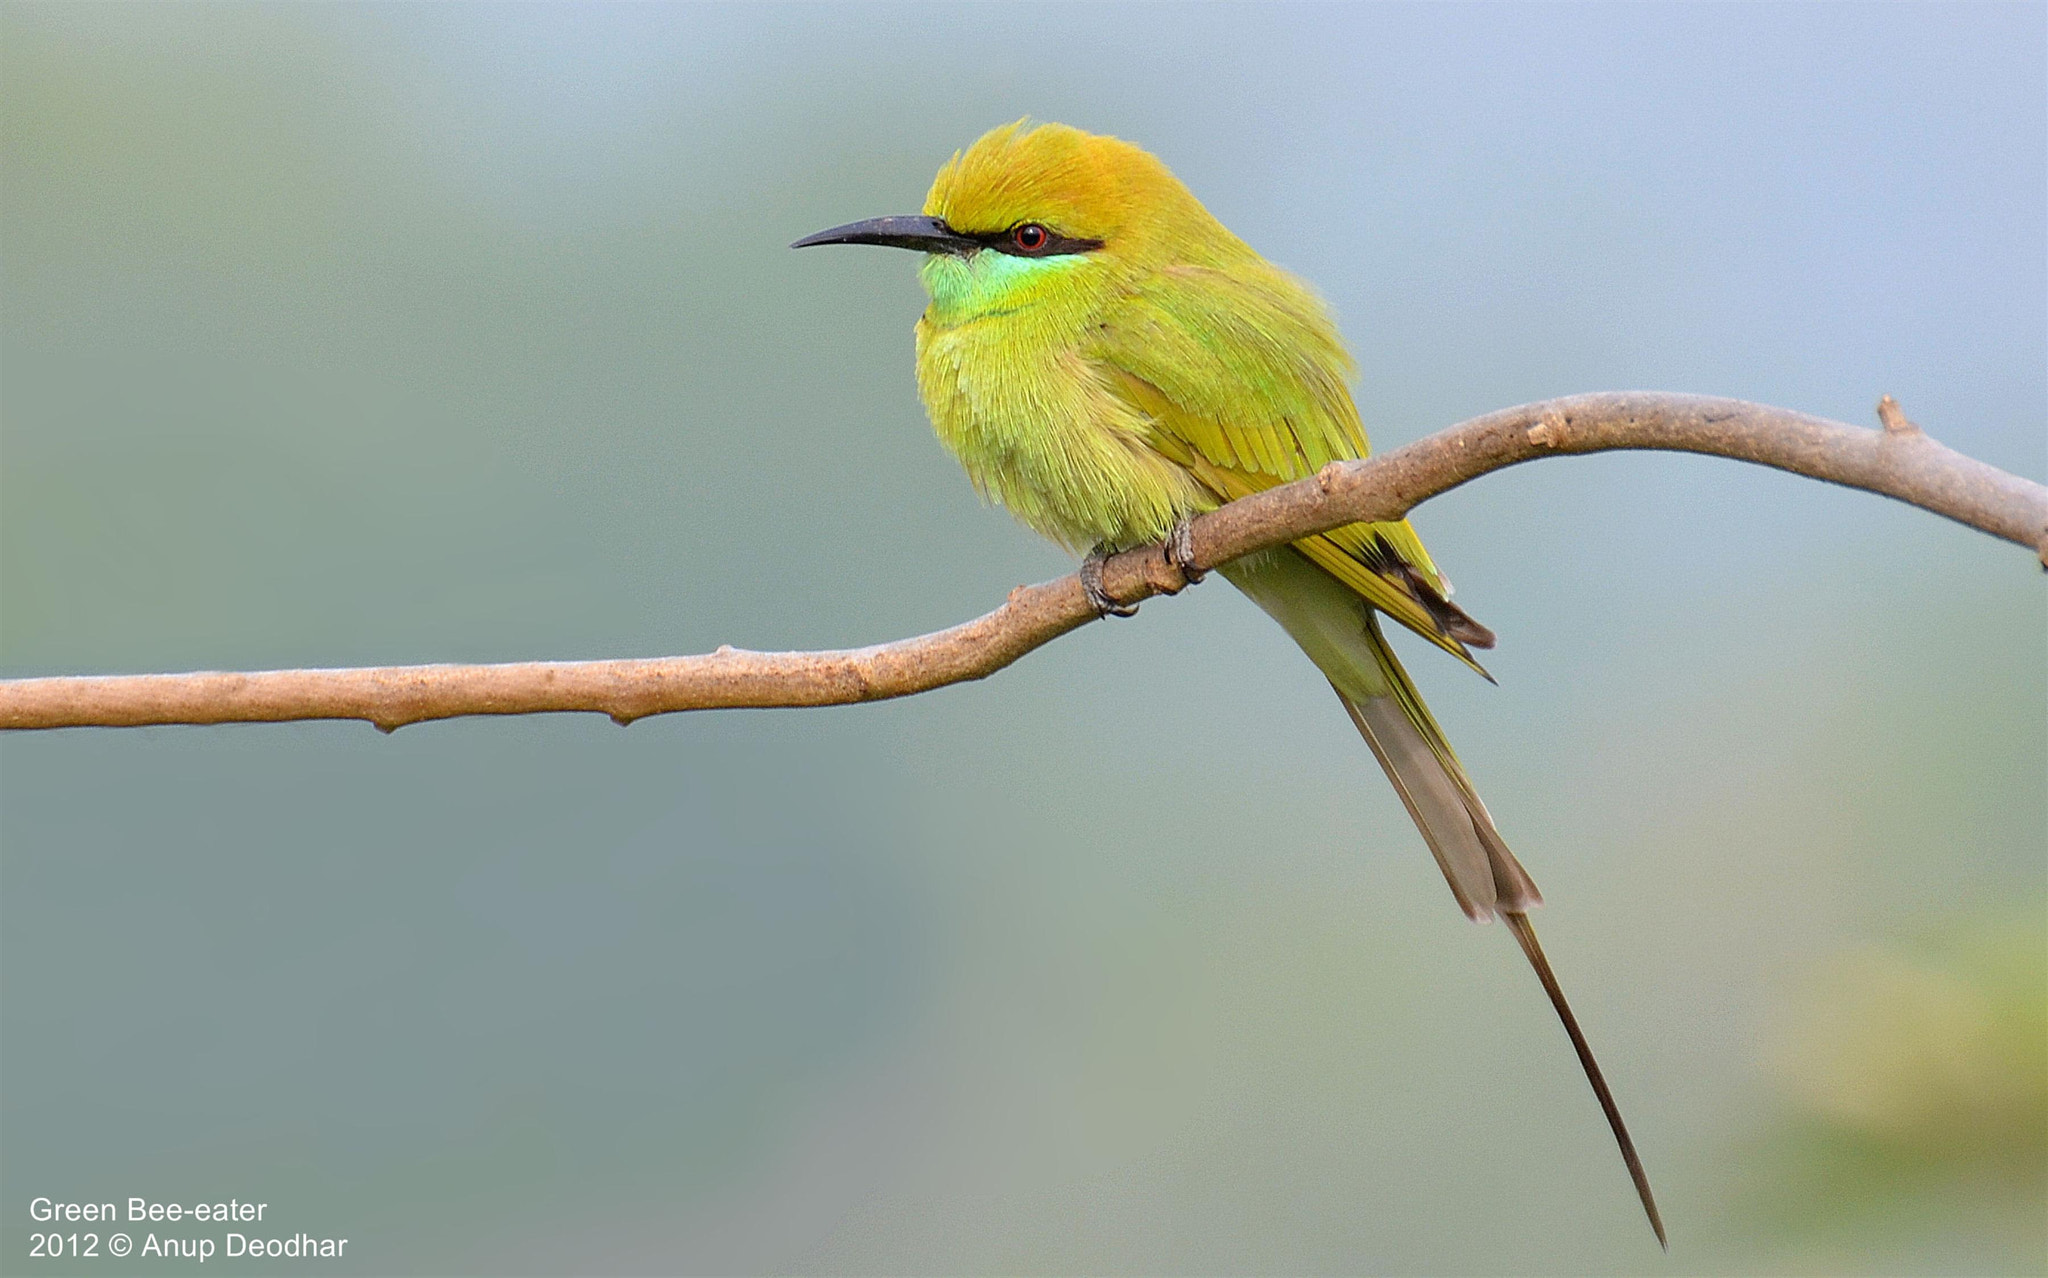 Photograph Green Bee-eater by Anup Deodhar on 500px